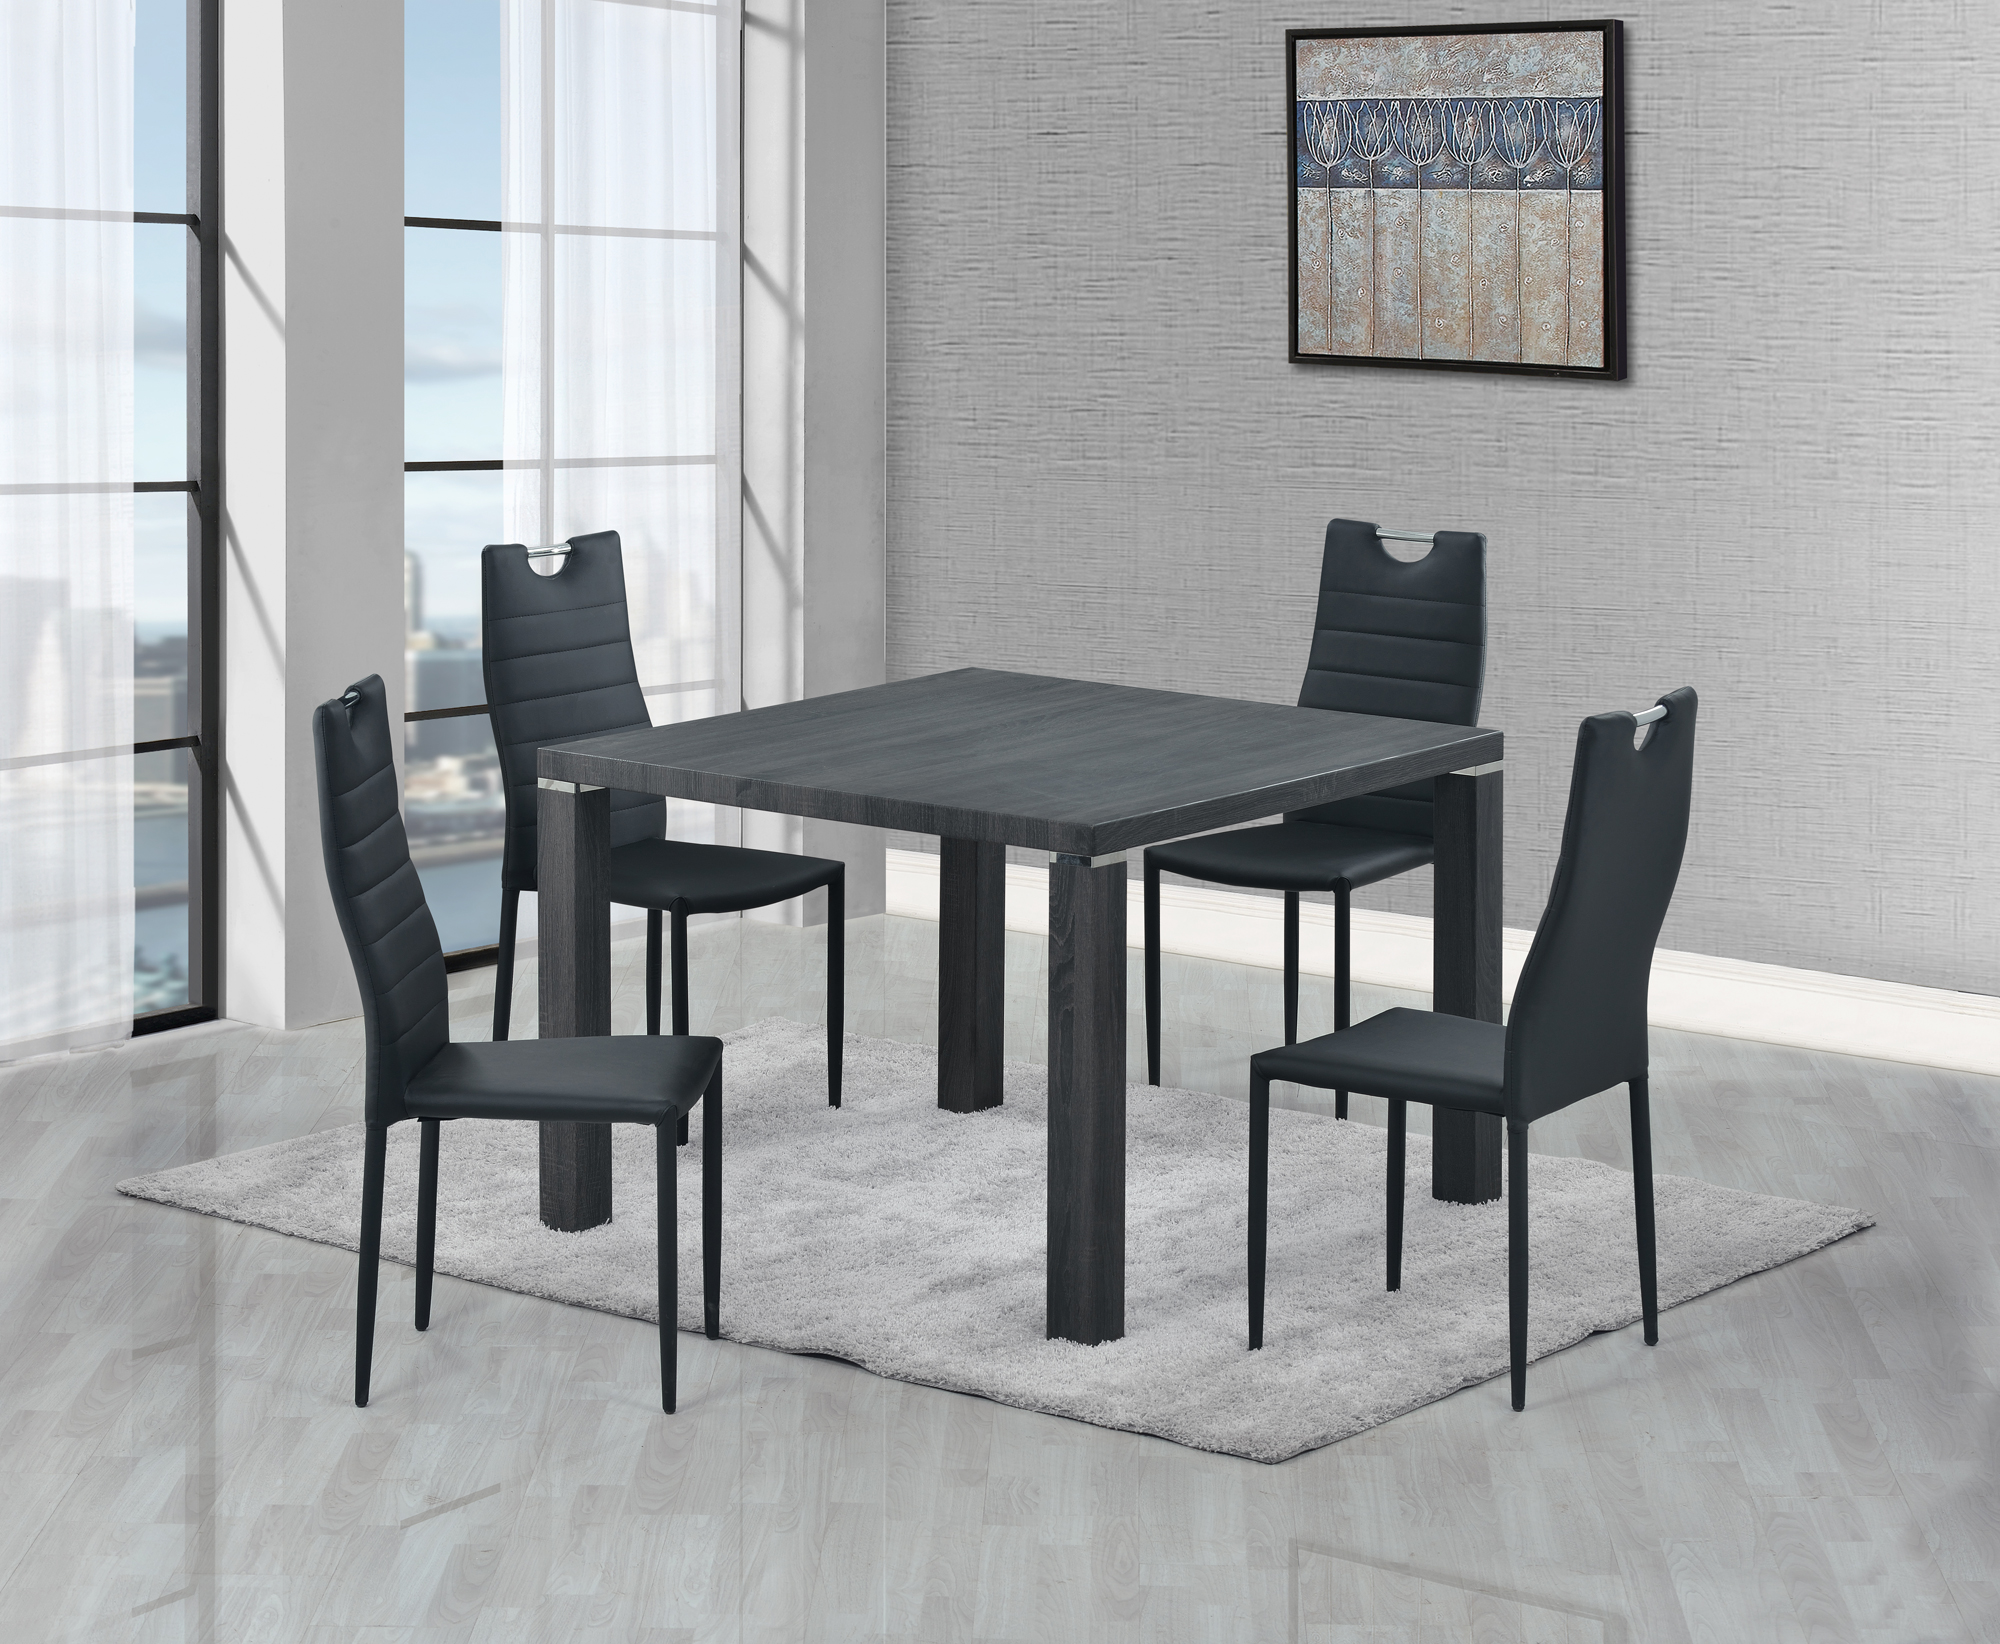 Grey Wood Dining Chairs Dining Table D733dt Grey Wood By Global Furniture